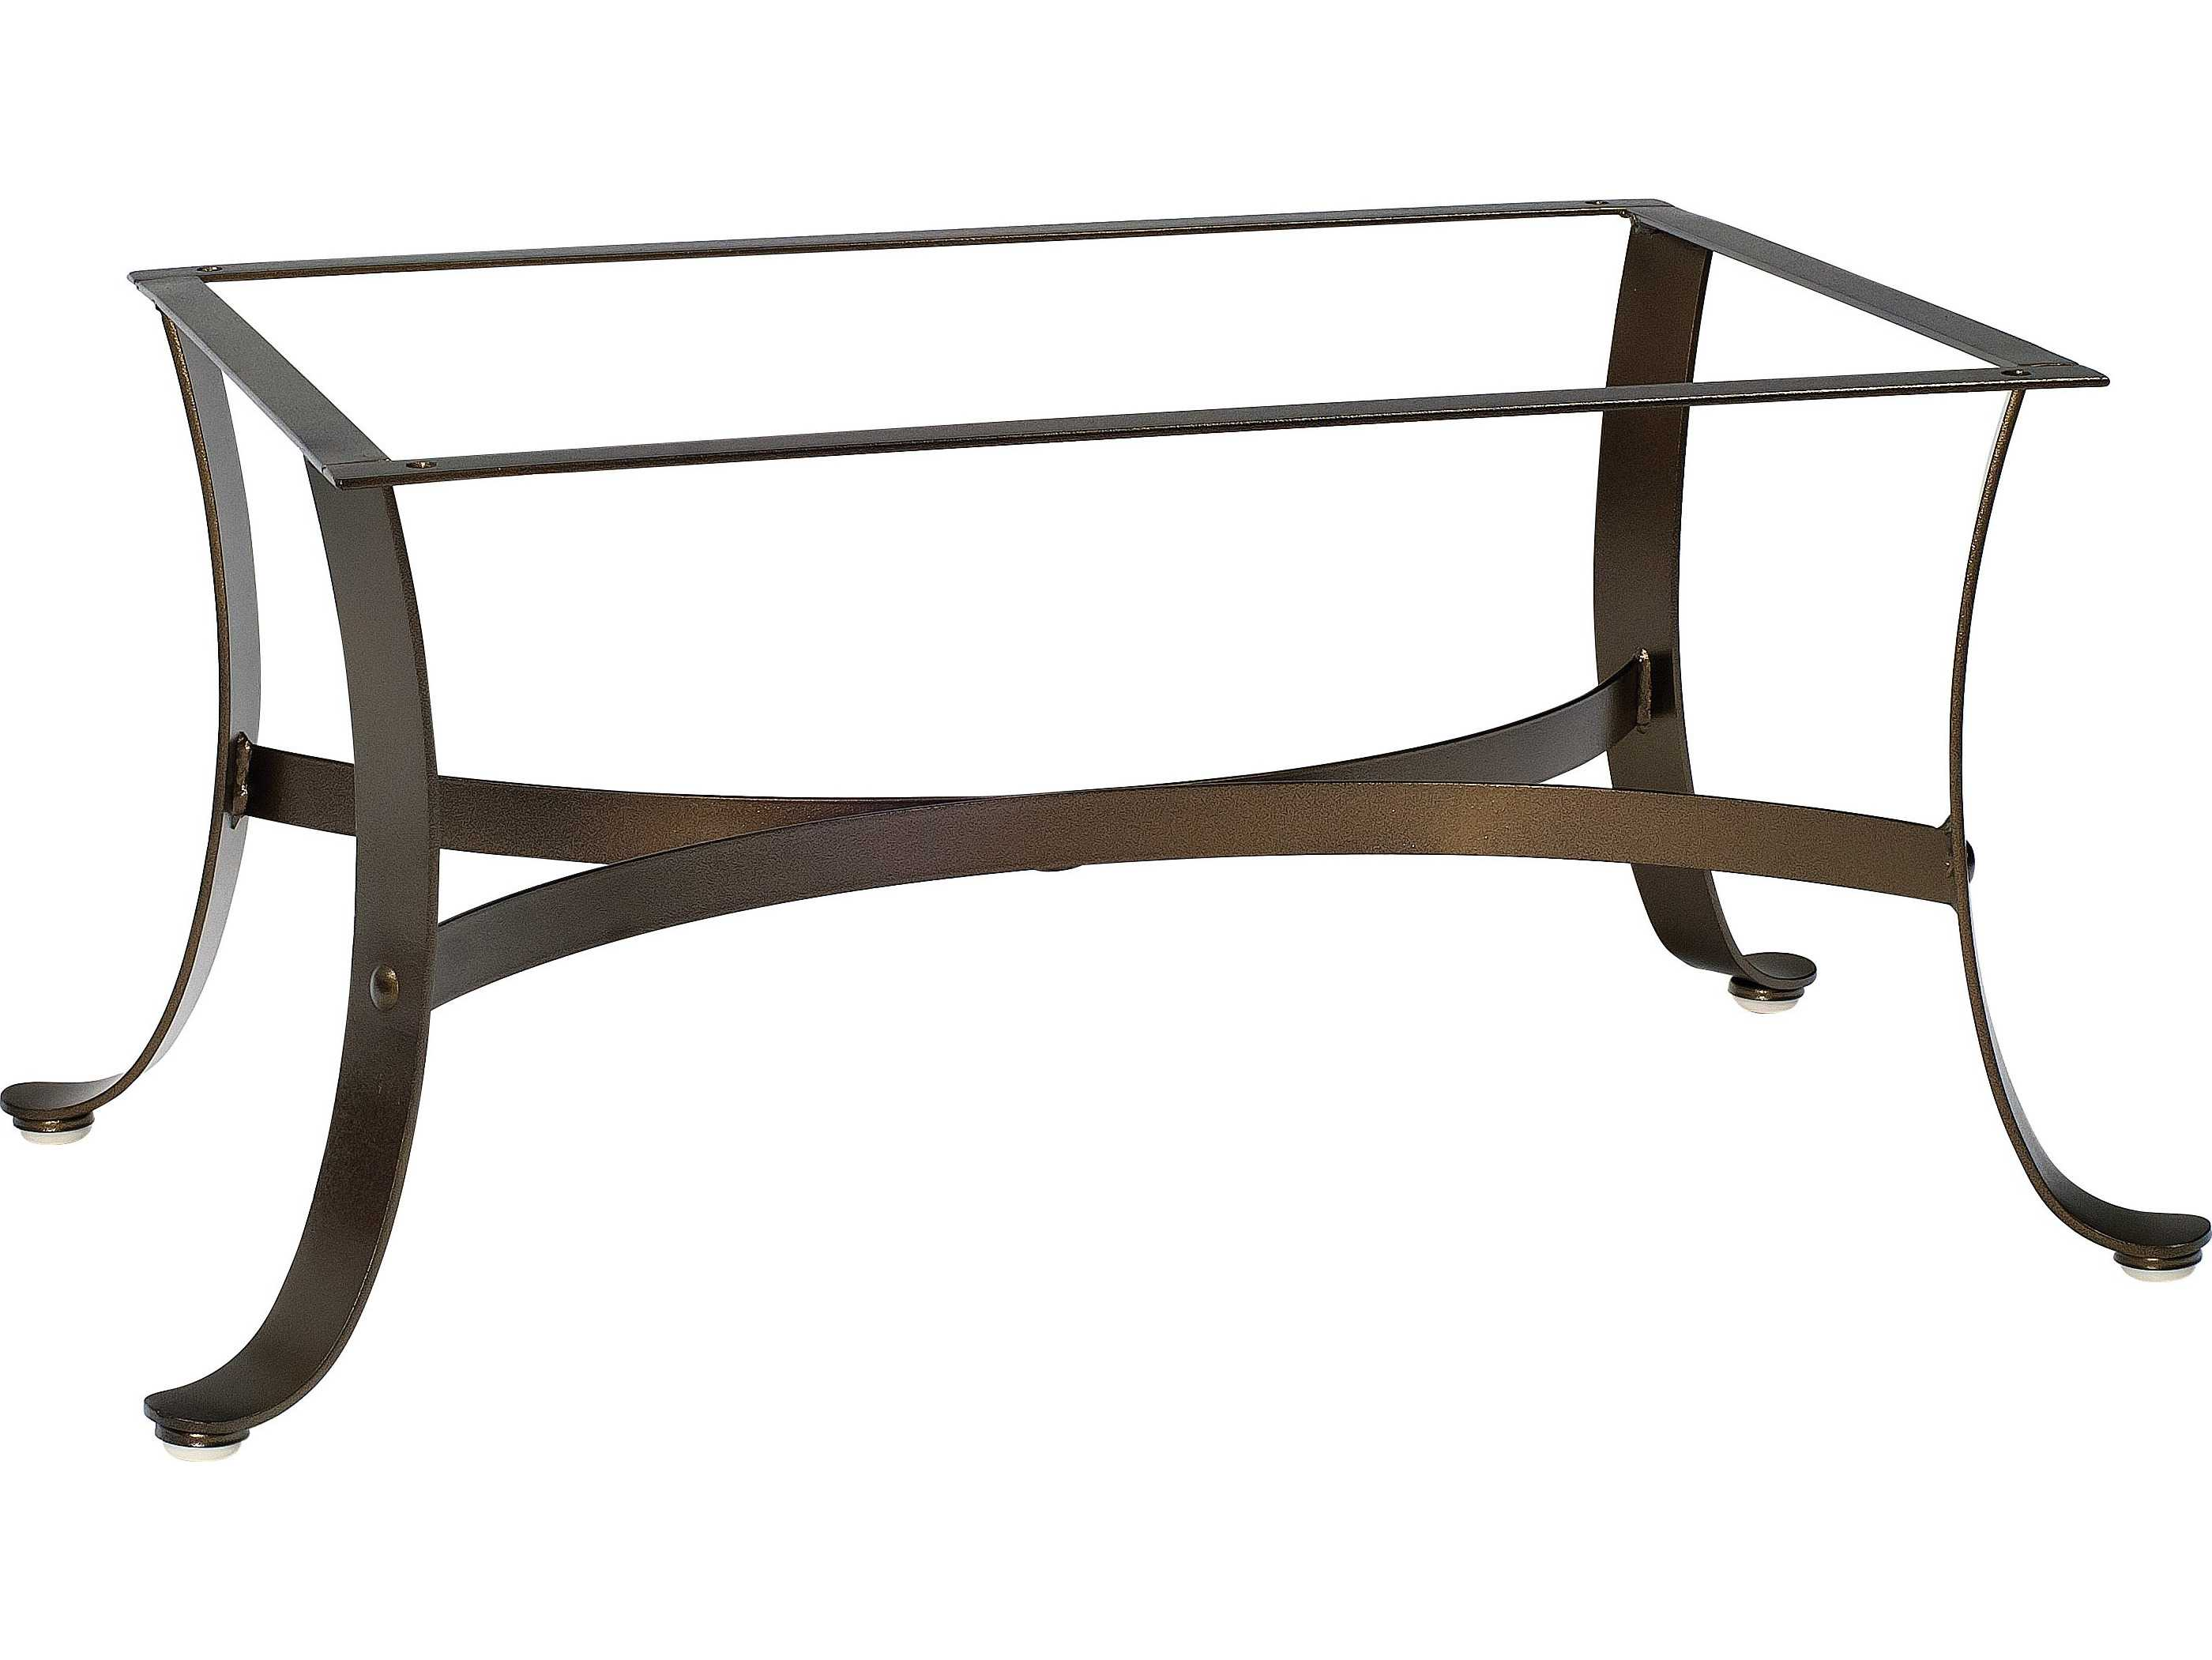 Woodard cascade wrought iron coffee table base 2w4400 Wrought iron coffee table bases